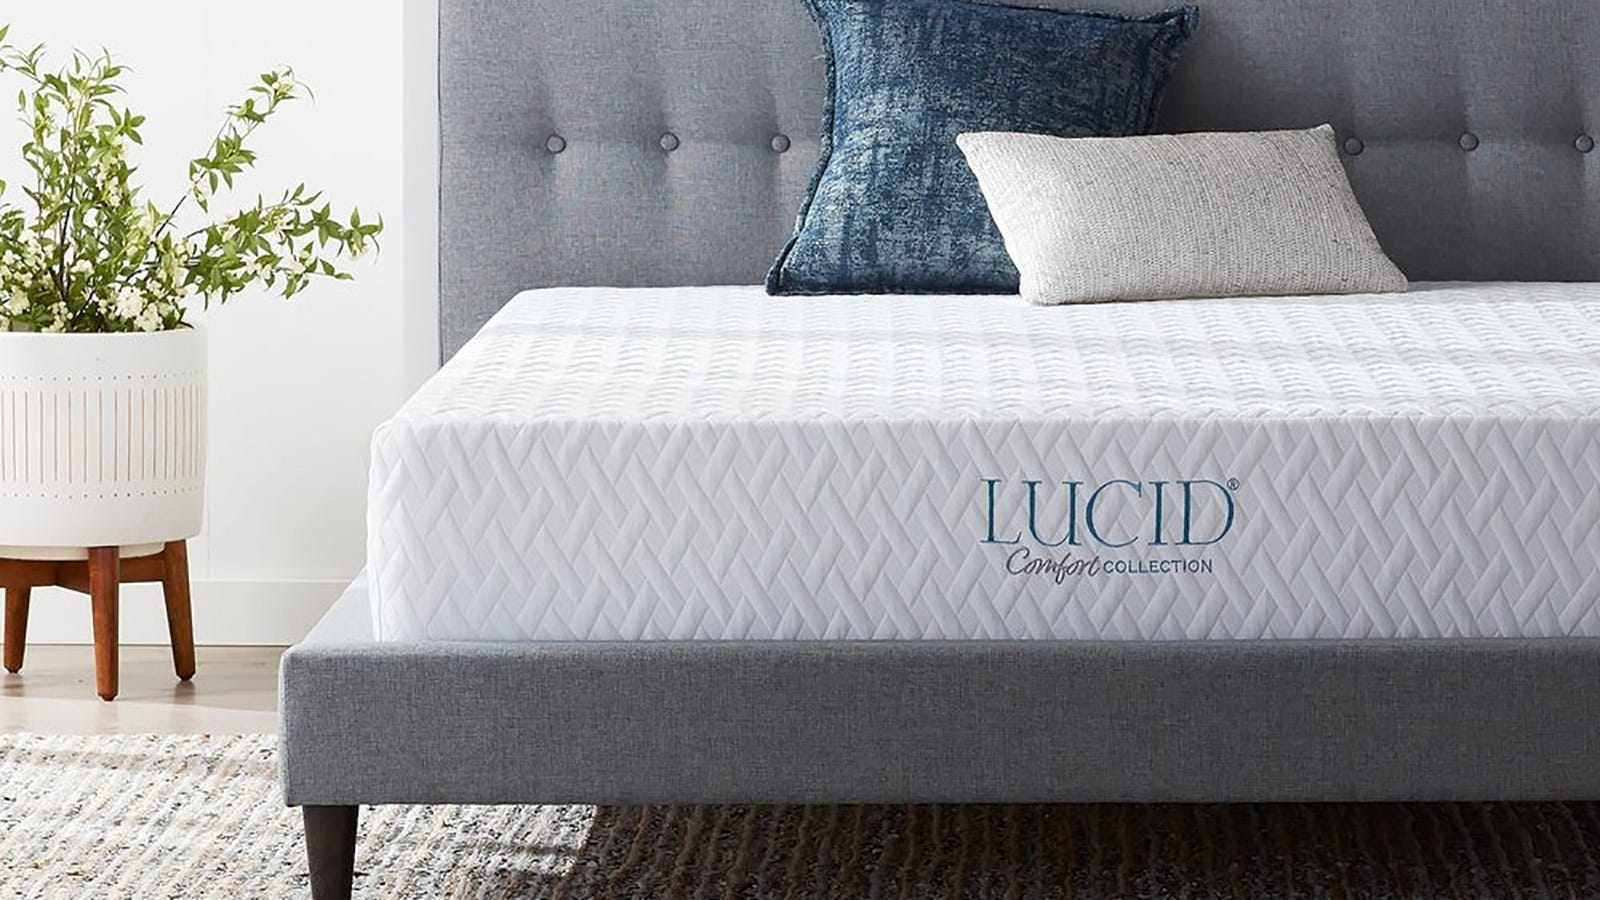 Get major savings on thousands of items at Overstock's huge fall home sale